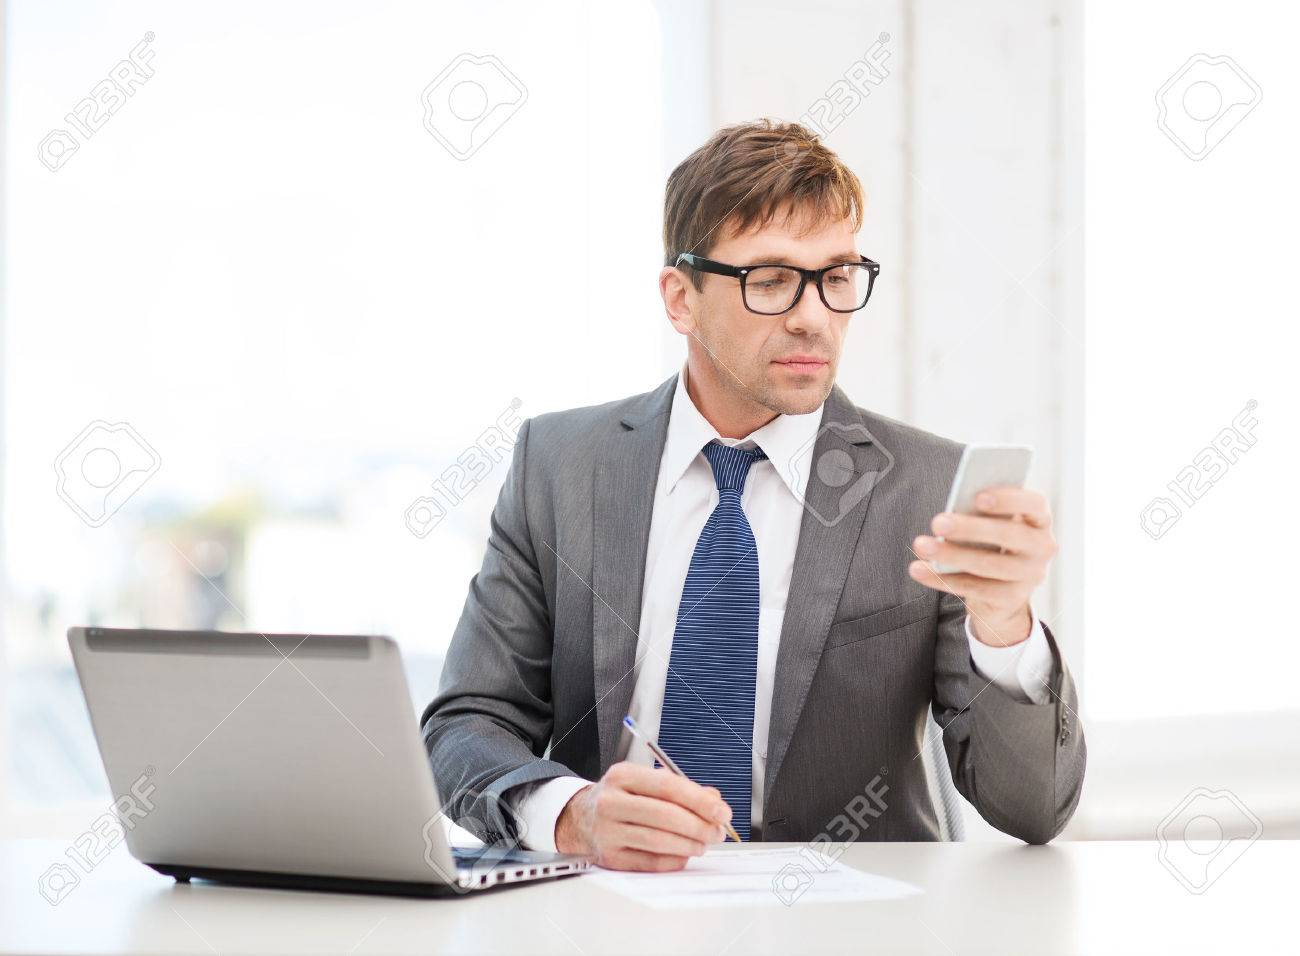 stock photo technology business and office concept handsome businessman working with laptop computer and smartphone business computer